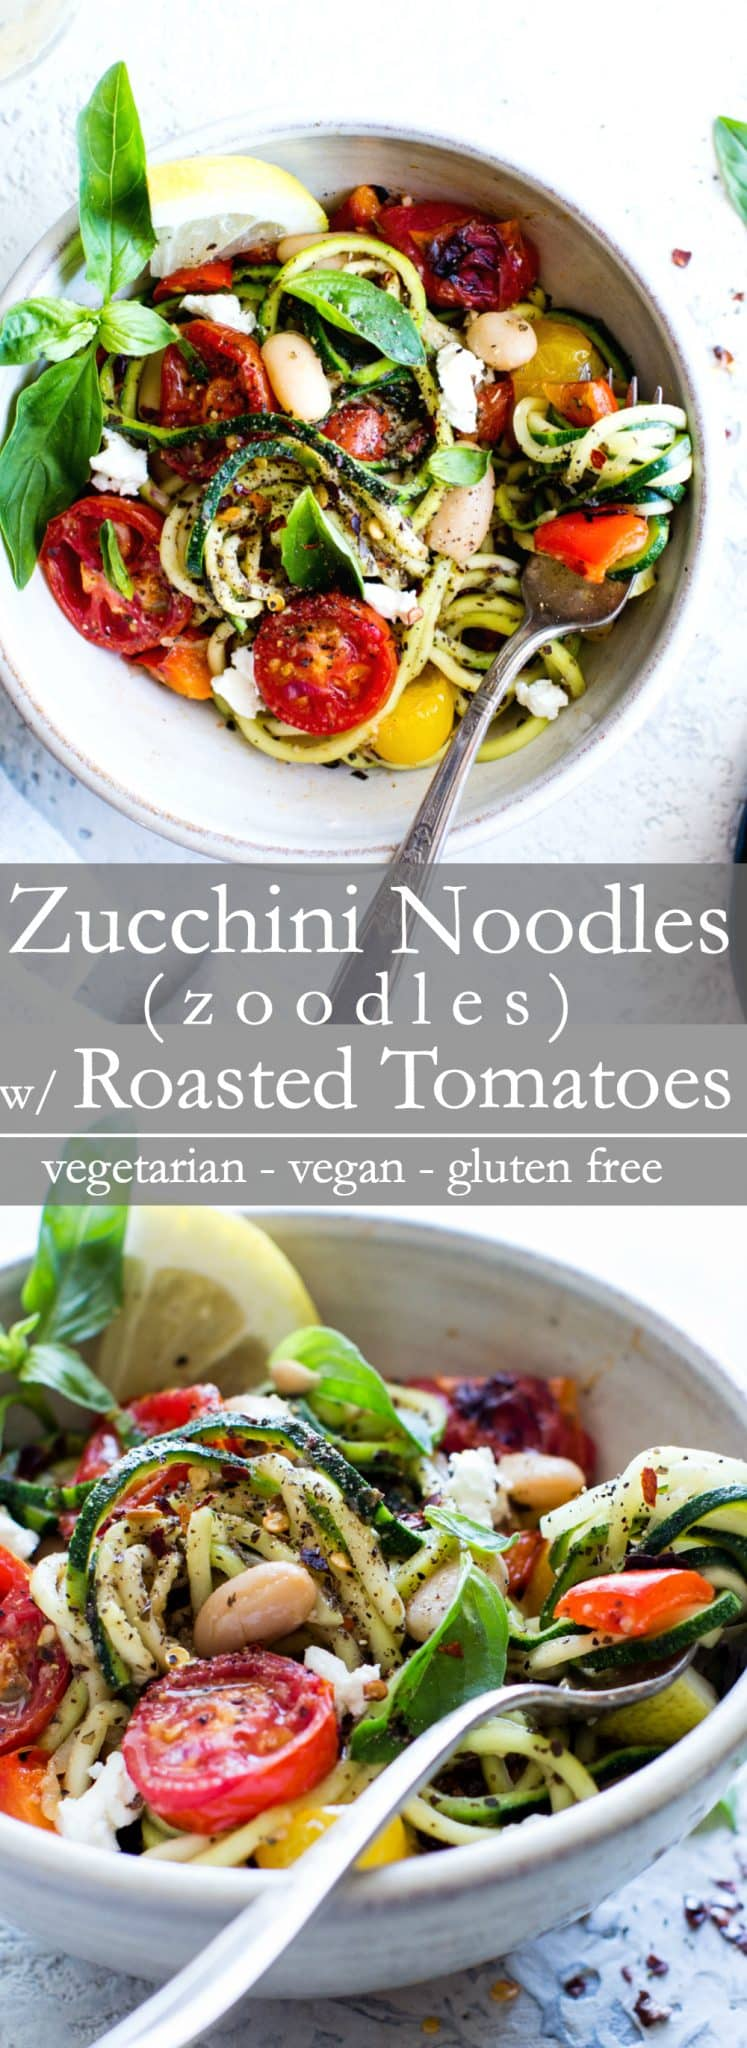 Zucchini Noodles (Zoodles) Recipe with Roasted Cherry Tomatoes recipe: quick to pull together and packed with late summer veggies. I share how simple it is to cook zucchini noodles in a fabulous and easy zoodles recipe. A healthy pasta alternative when zucchini is in season! #VegetarianFood #VeganFood #Recipe #Zoodles #ZucchiniNoodles